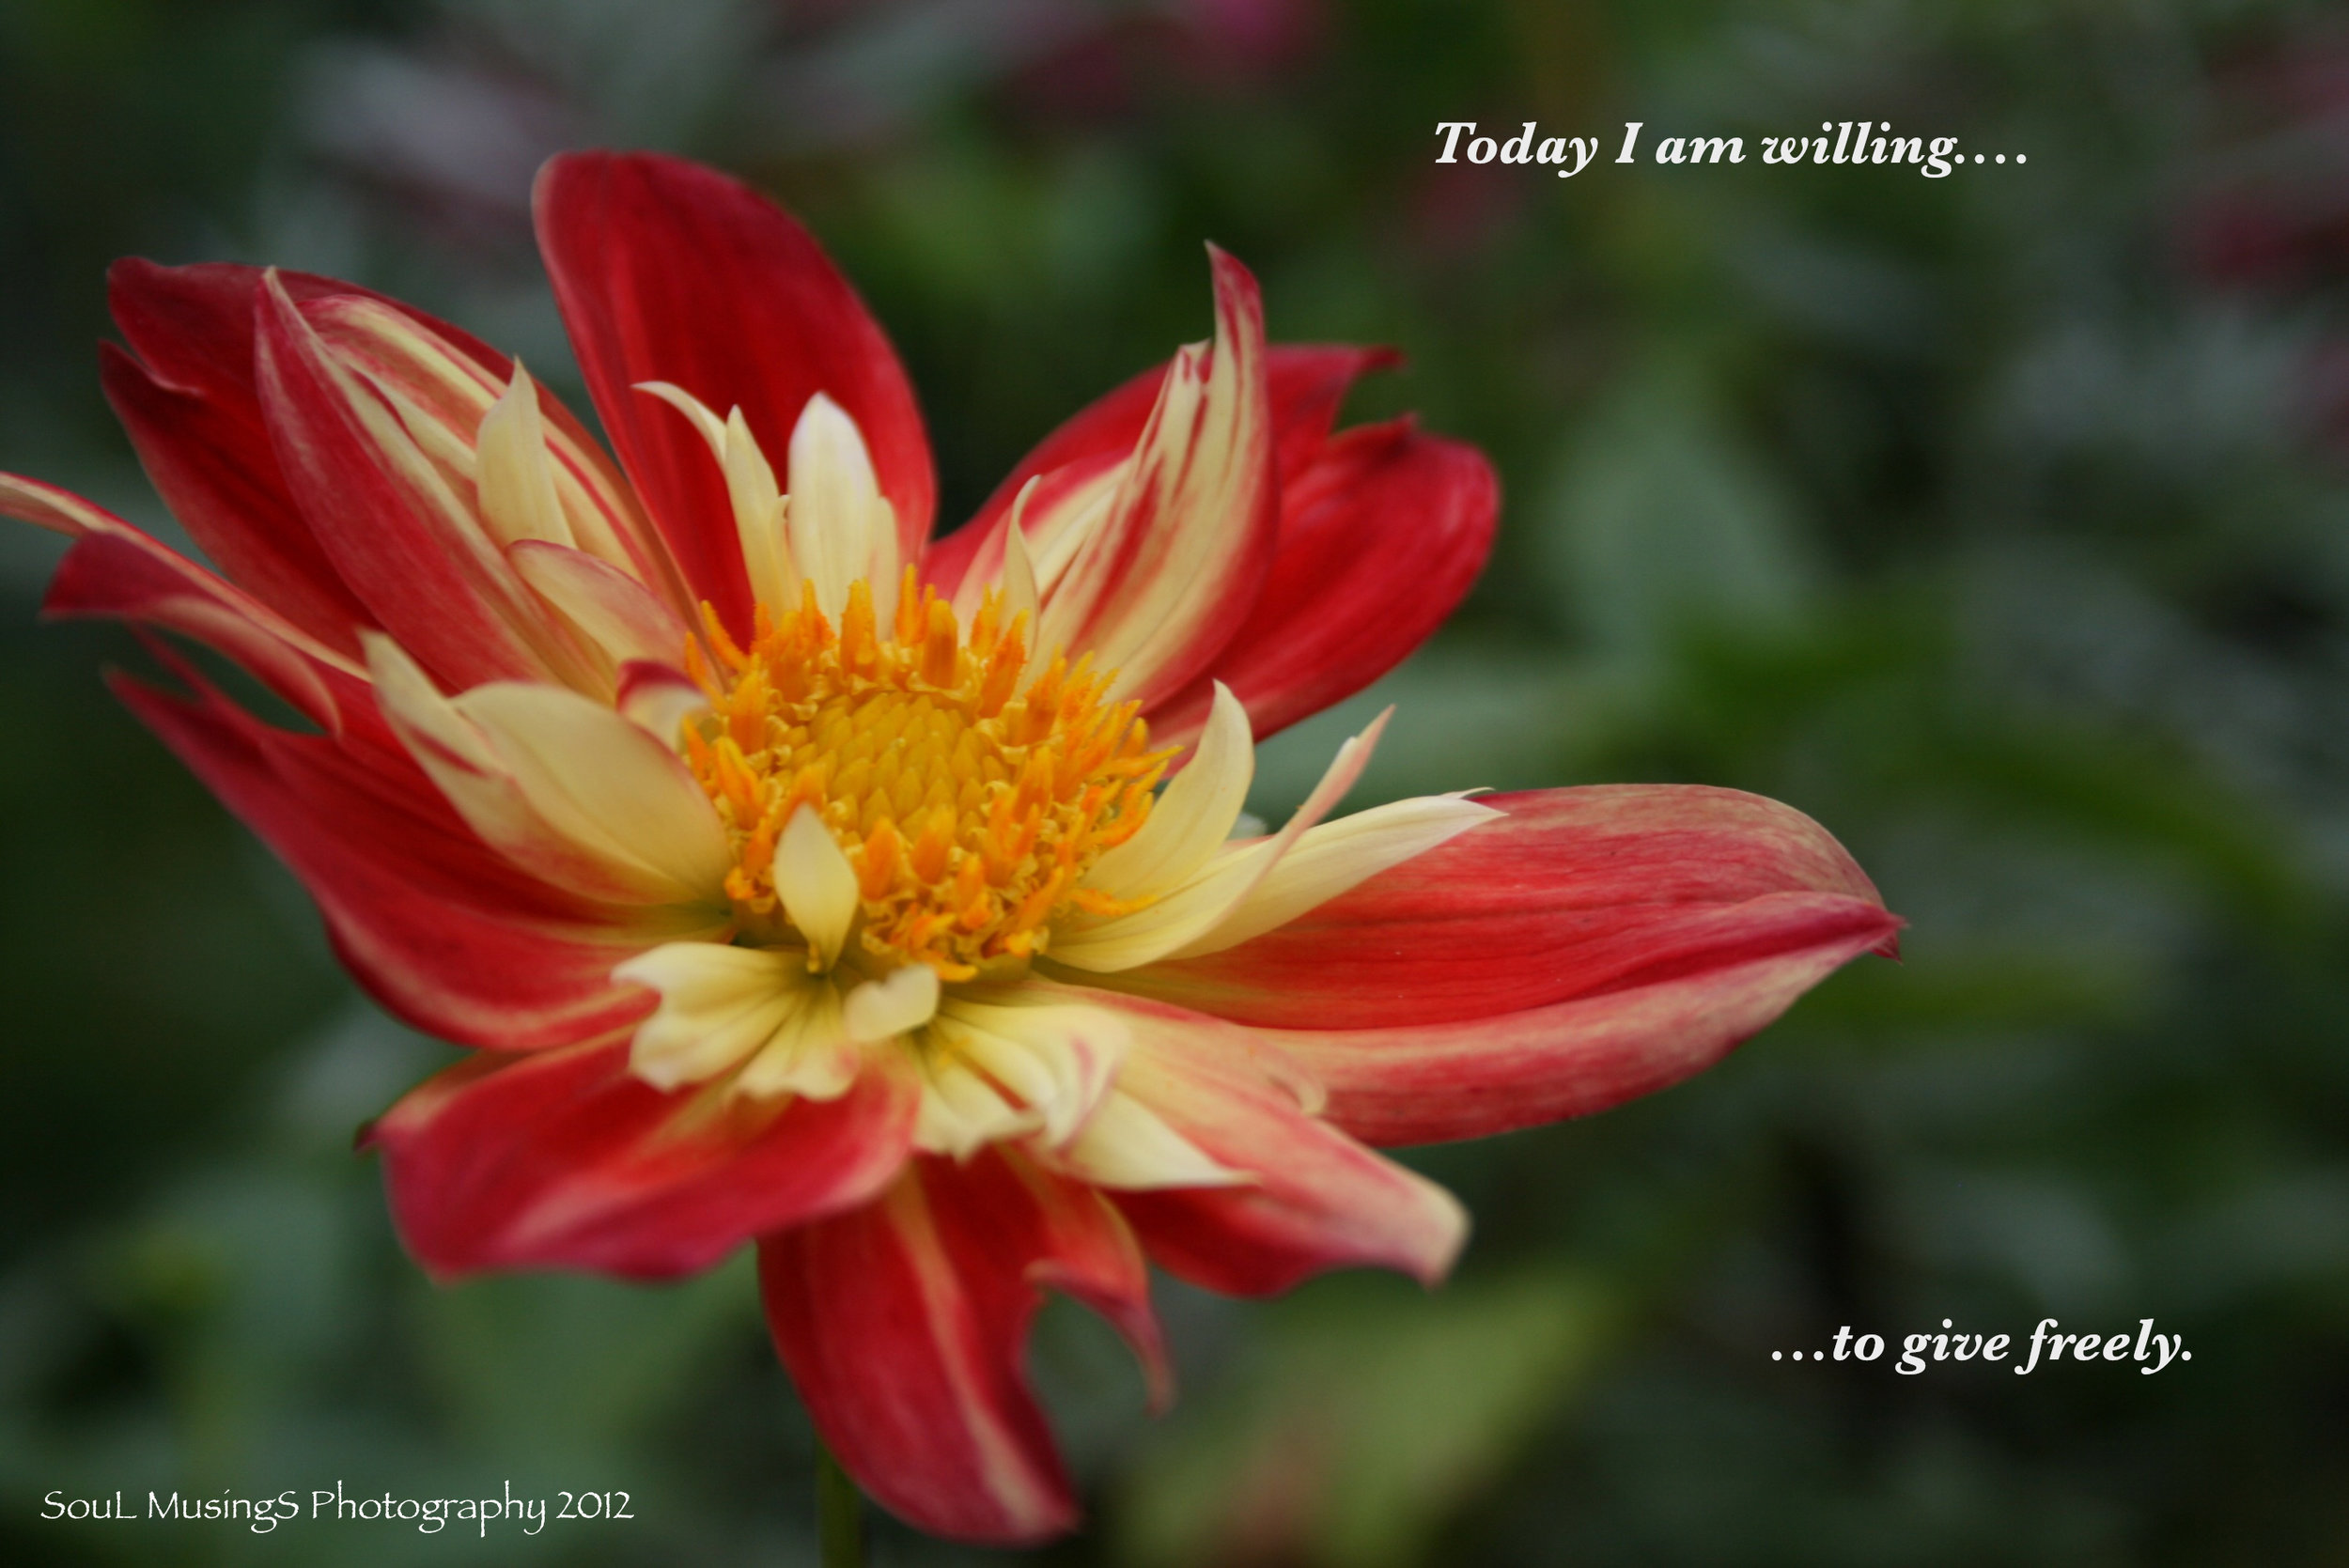 Dahlia_Willing_give freely_labled.jpg